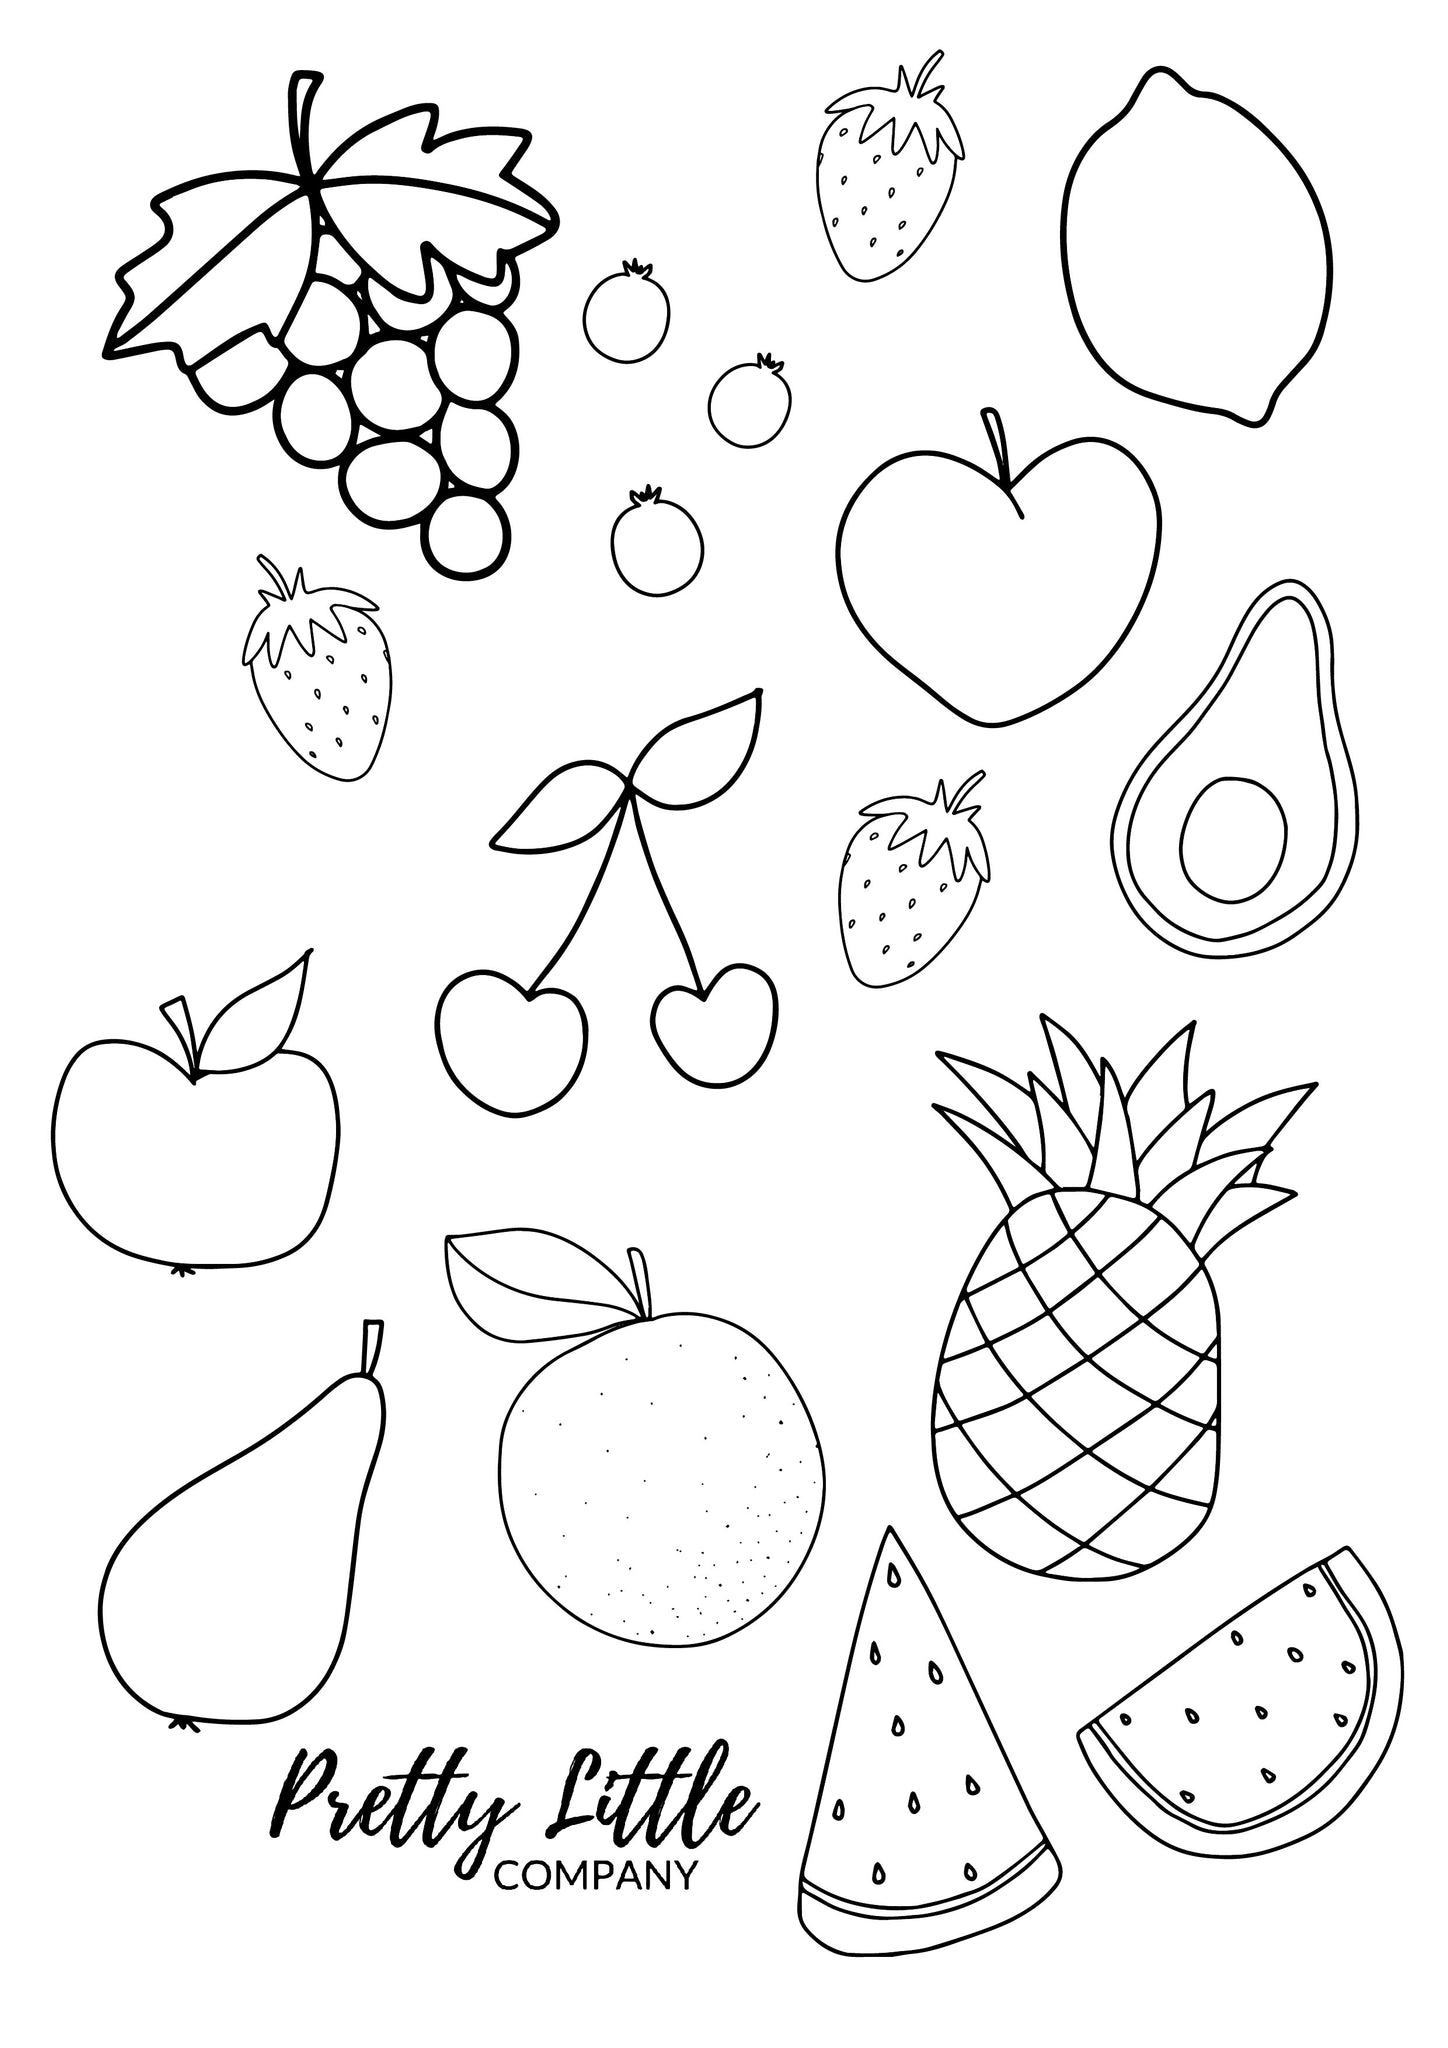 Cute Fruit Colouring Pages Free Download Pretty Little Company